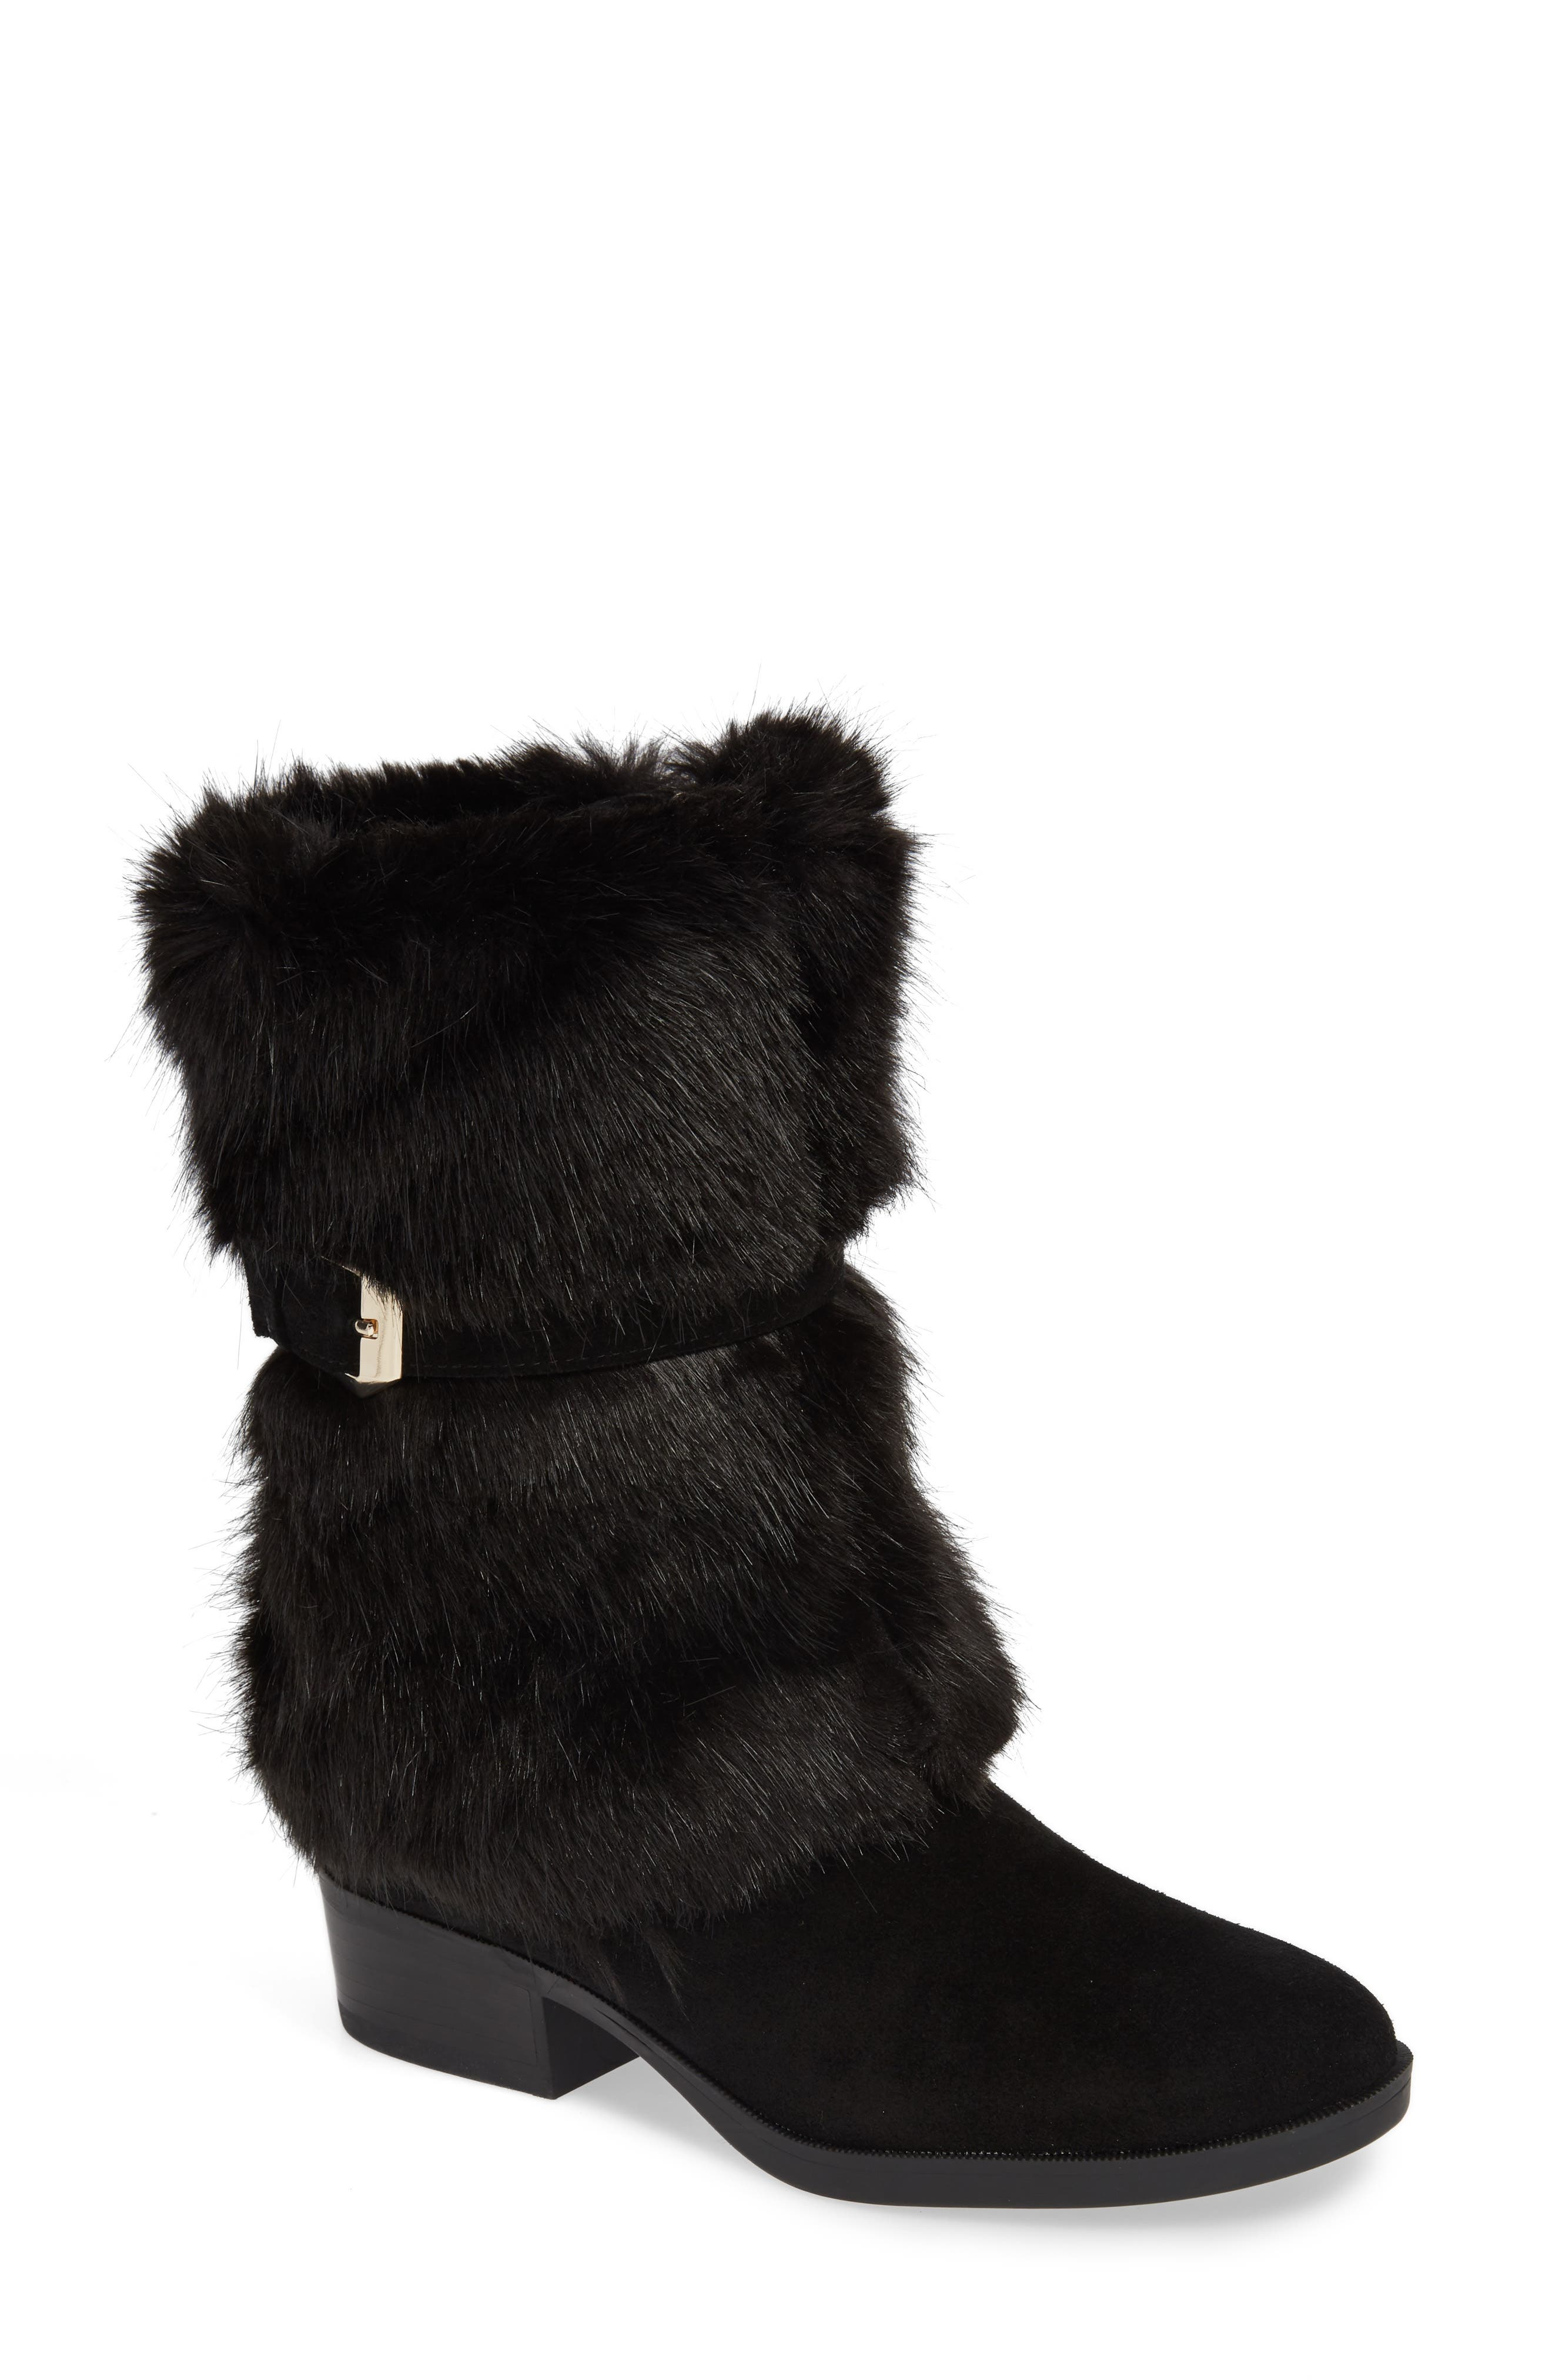 TARYN ROSE, Giselle Water Resistant Faux Fur Boot, Main thumbnail 1, color, BLACK SUEDE